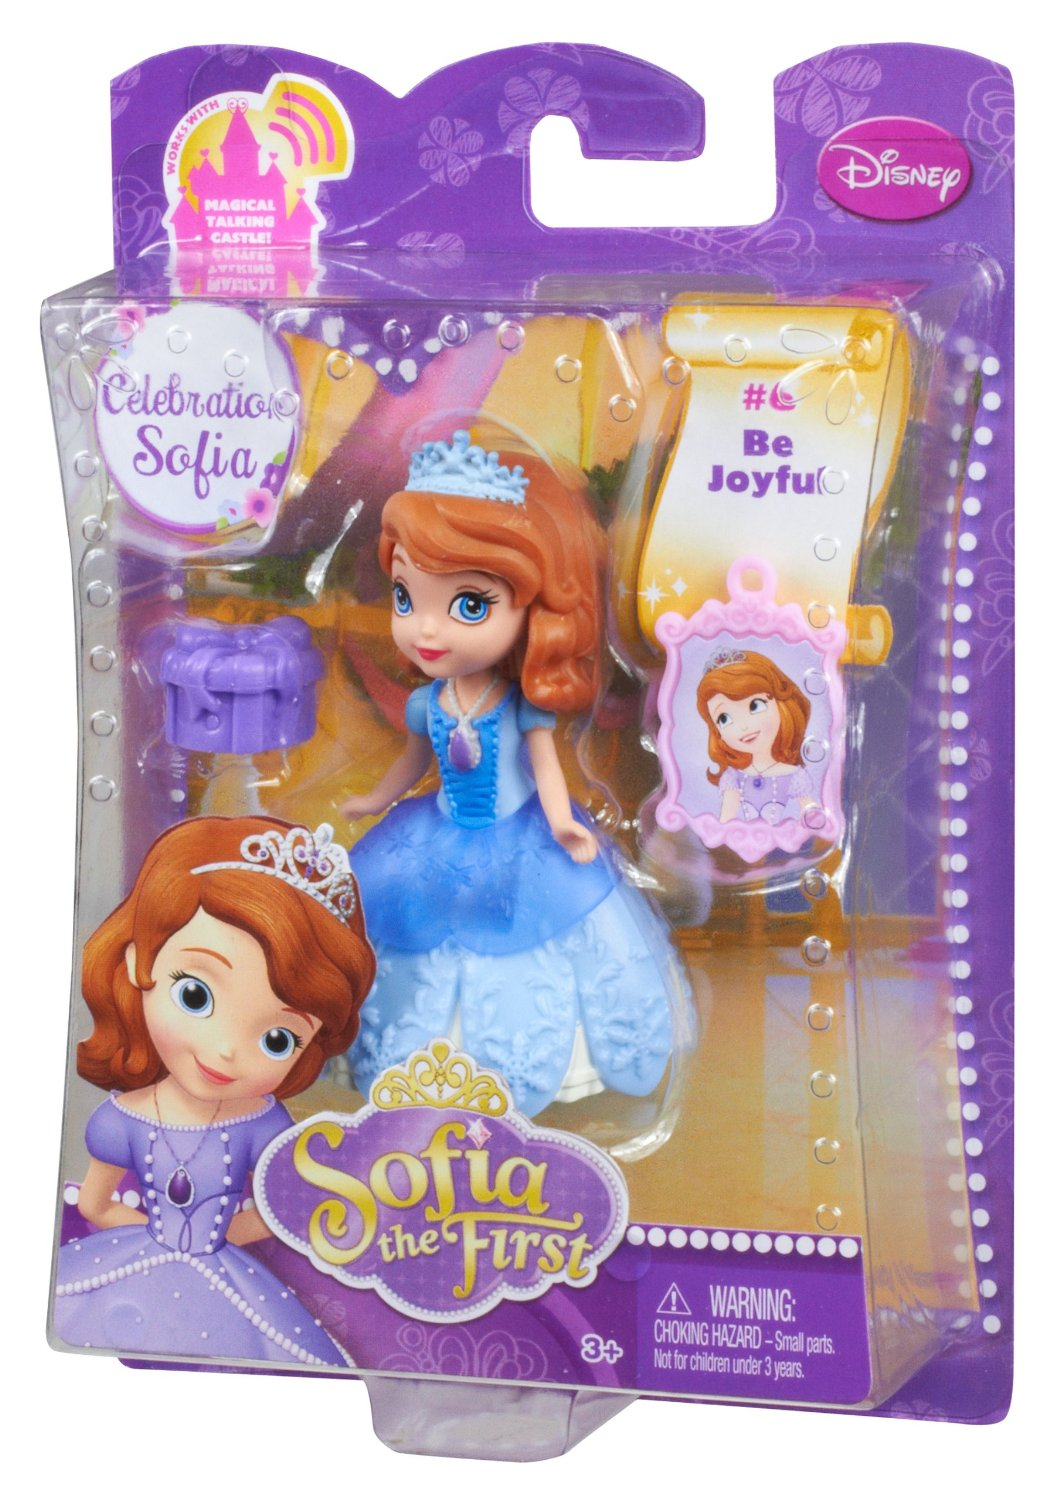 [Hình: bup-be-sofia-(disney-sofia-the-first-in-...oll)-1.jpg]